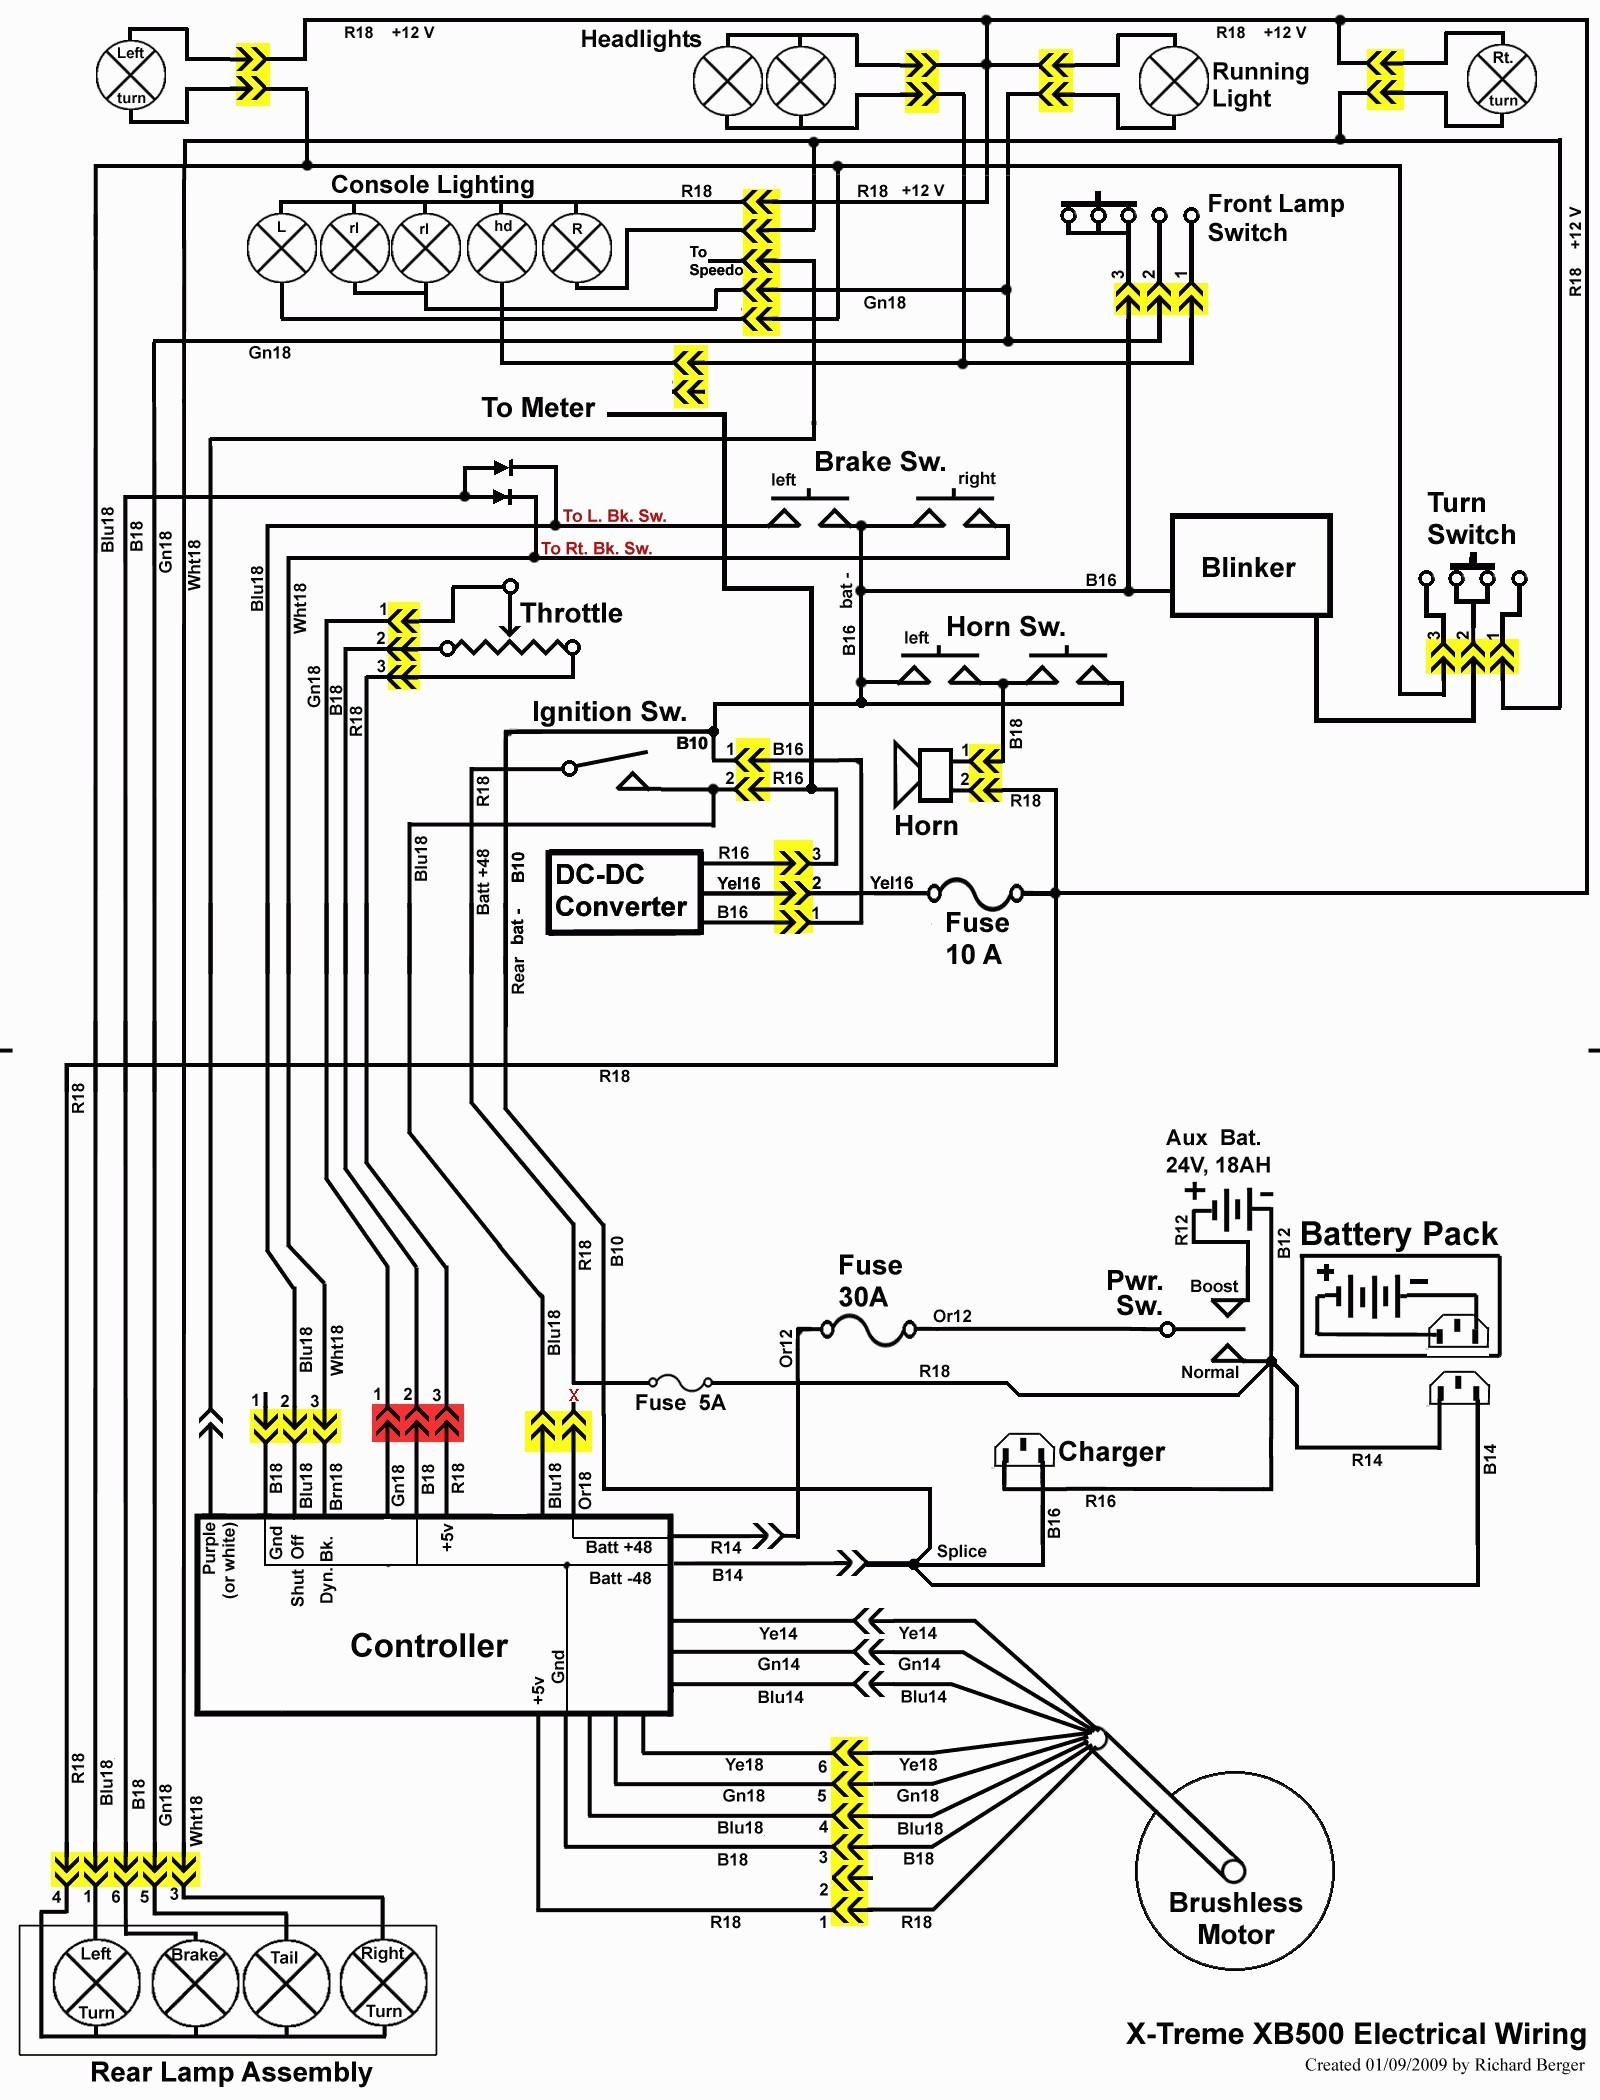 1997 Club Car Electrical Wiring Diagram Library Ds Schematic 48 Volt 2003 Dsl Model Yamaha Golf Cart 36